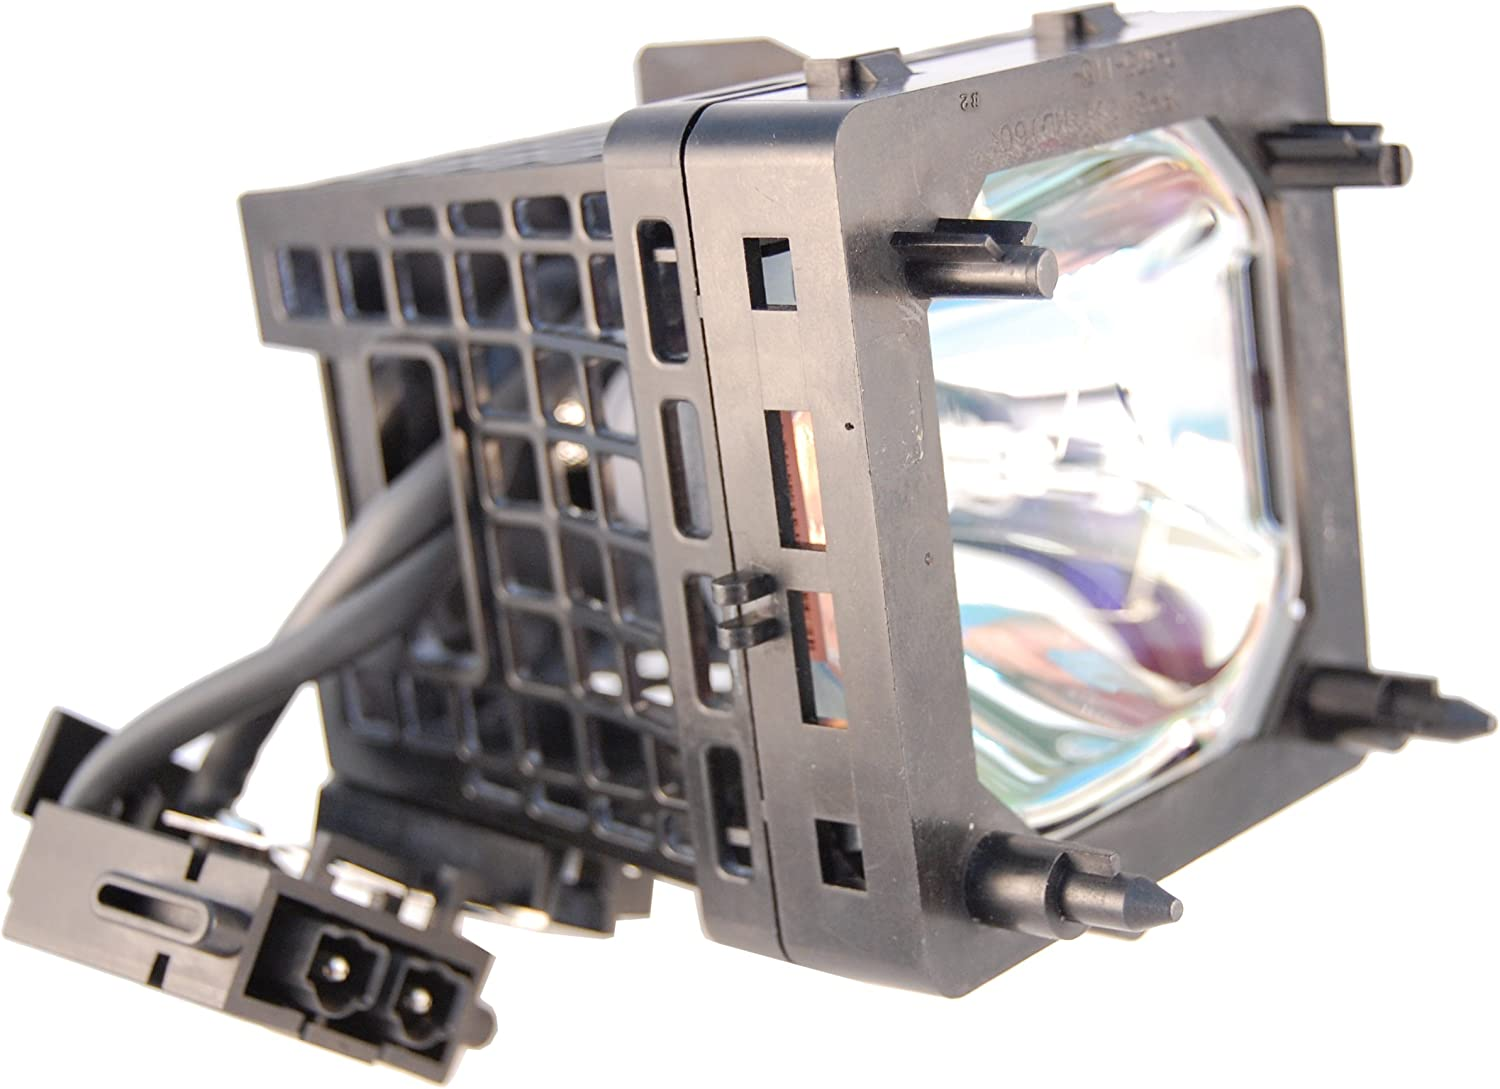 SONY KDS 60A2000 Replacement Rear projection TV Lamp A1203604A XL-5200 F93088600